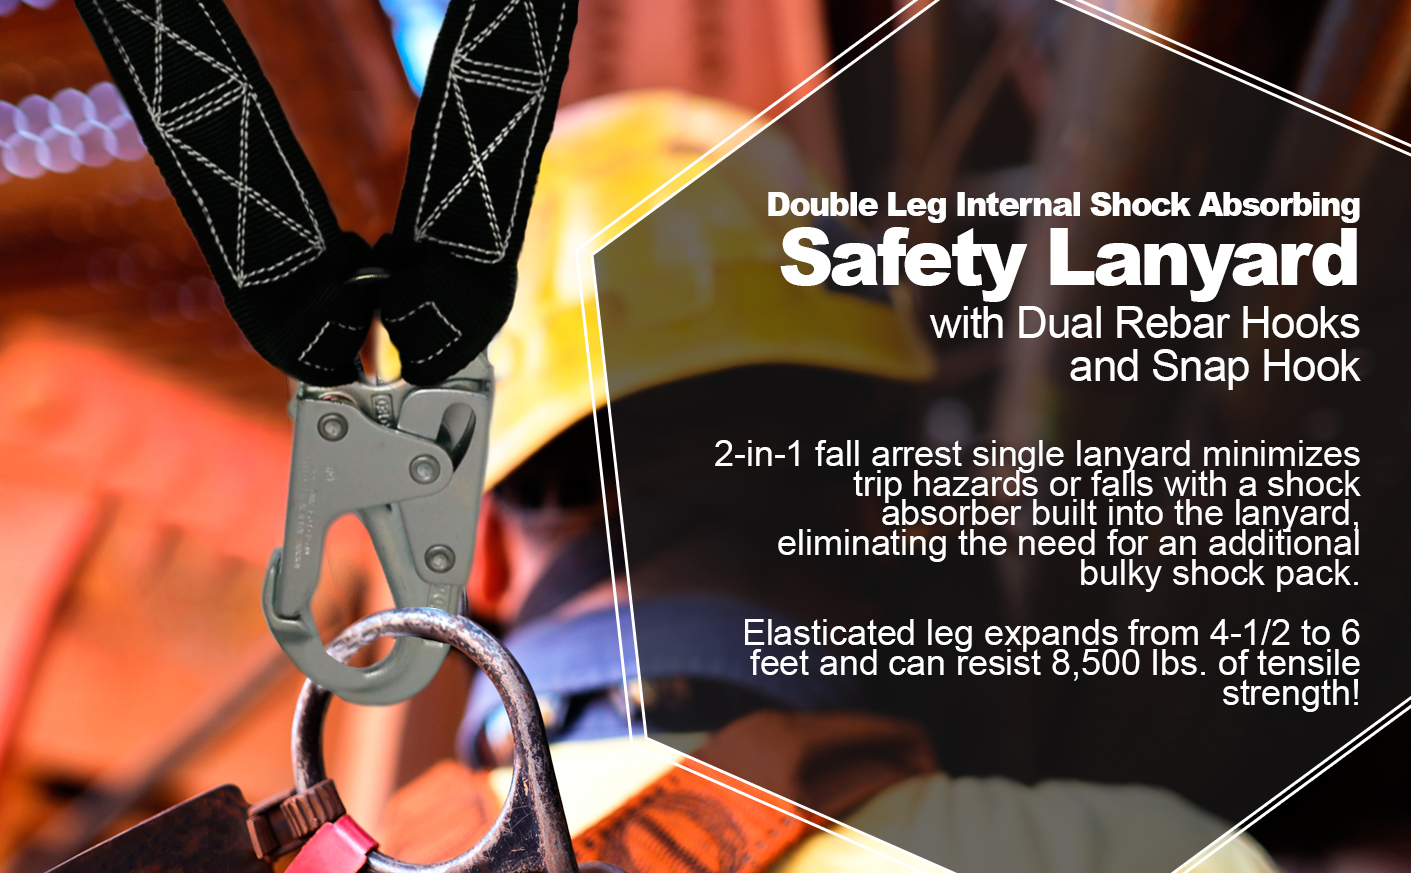 6 FT Double Leg Internal Shock Absorbing Lanyard with Dual Rebar Hooks and Snap Hook Quick One Safety